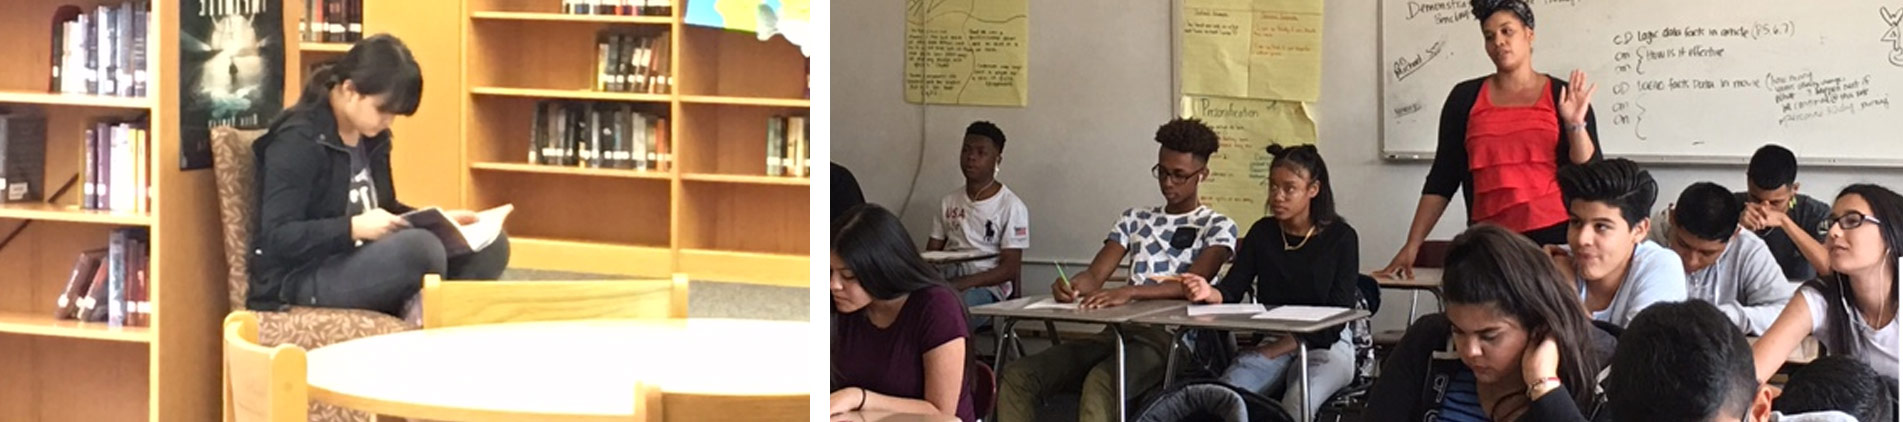 Student studying in library and students in classroom